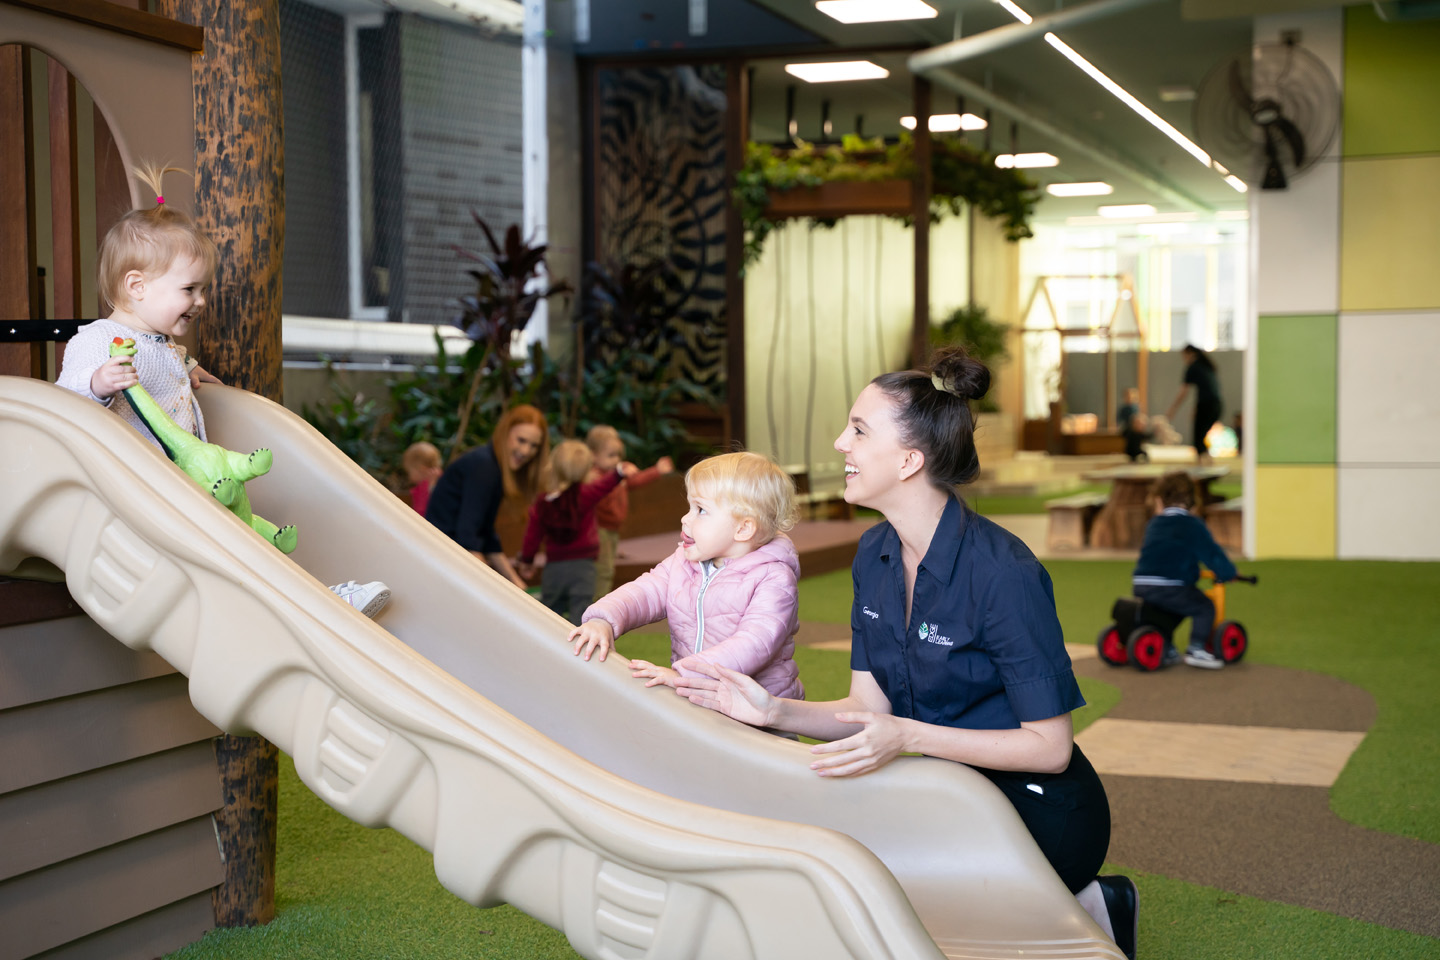 South Brisbane outdoor play area